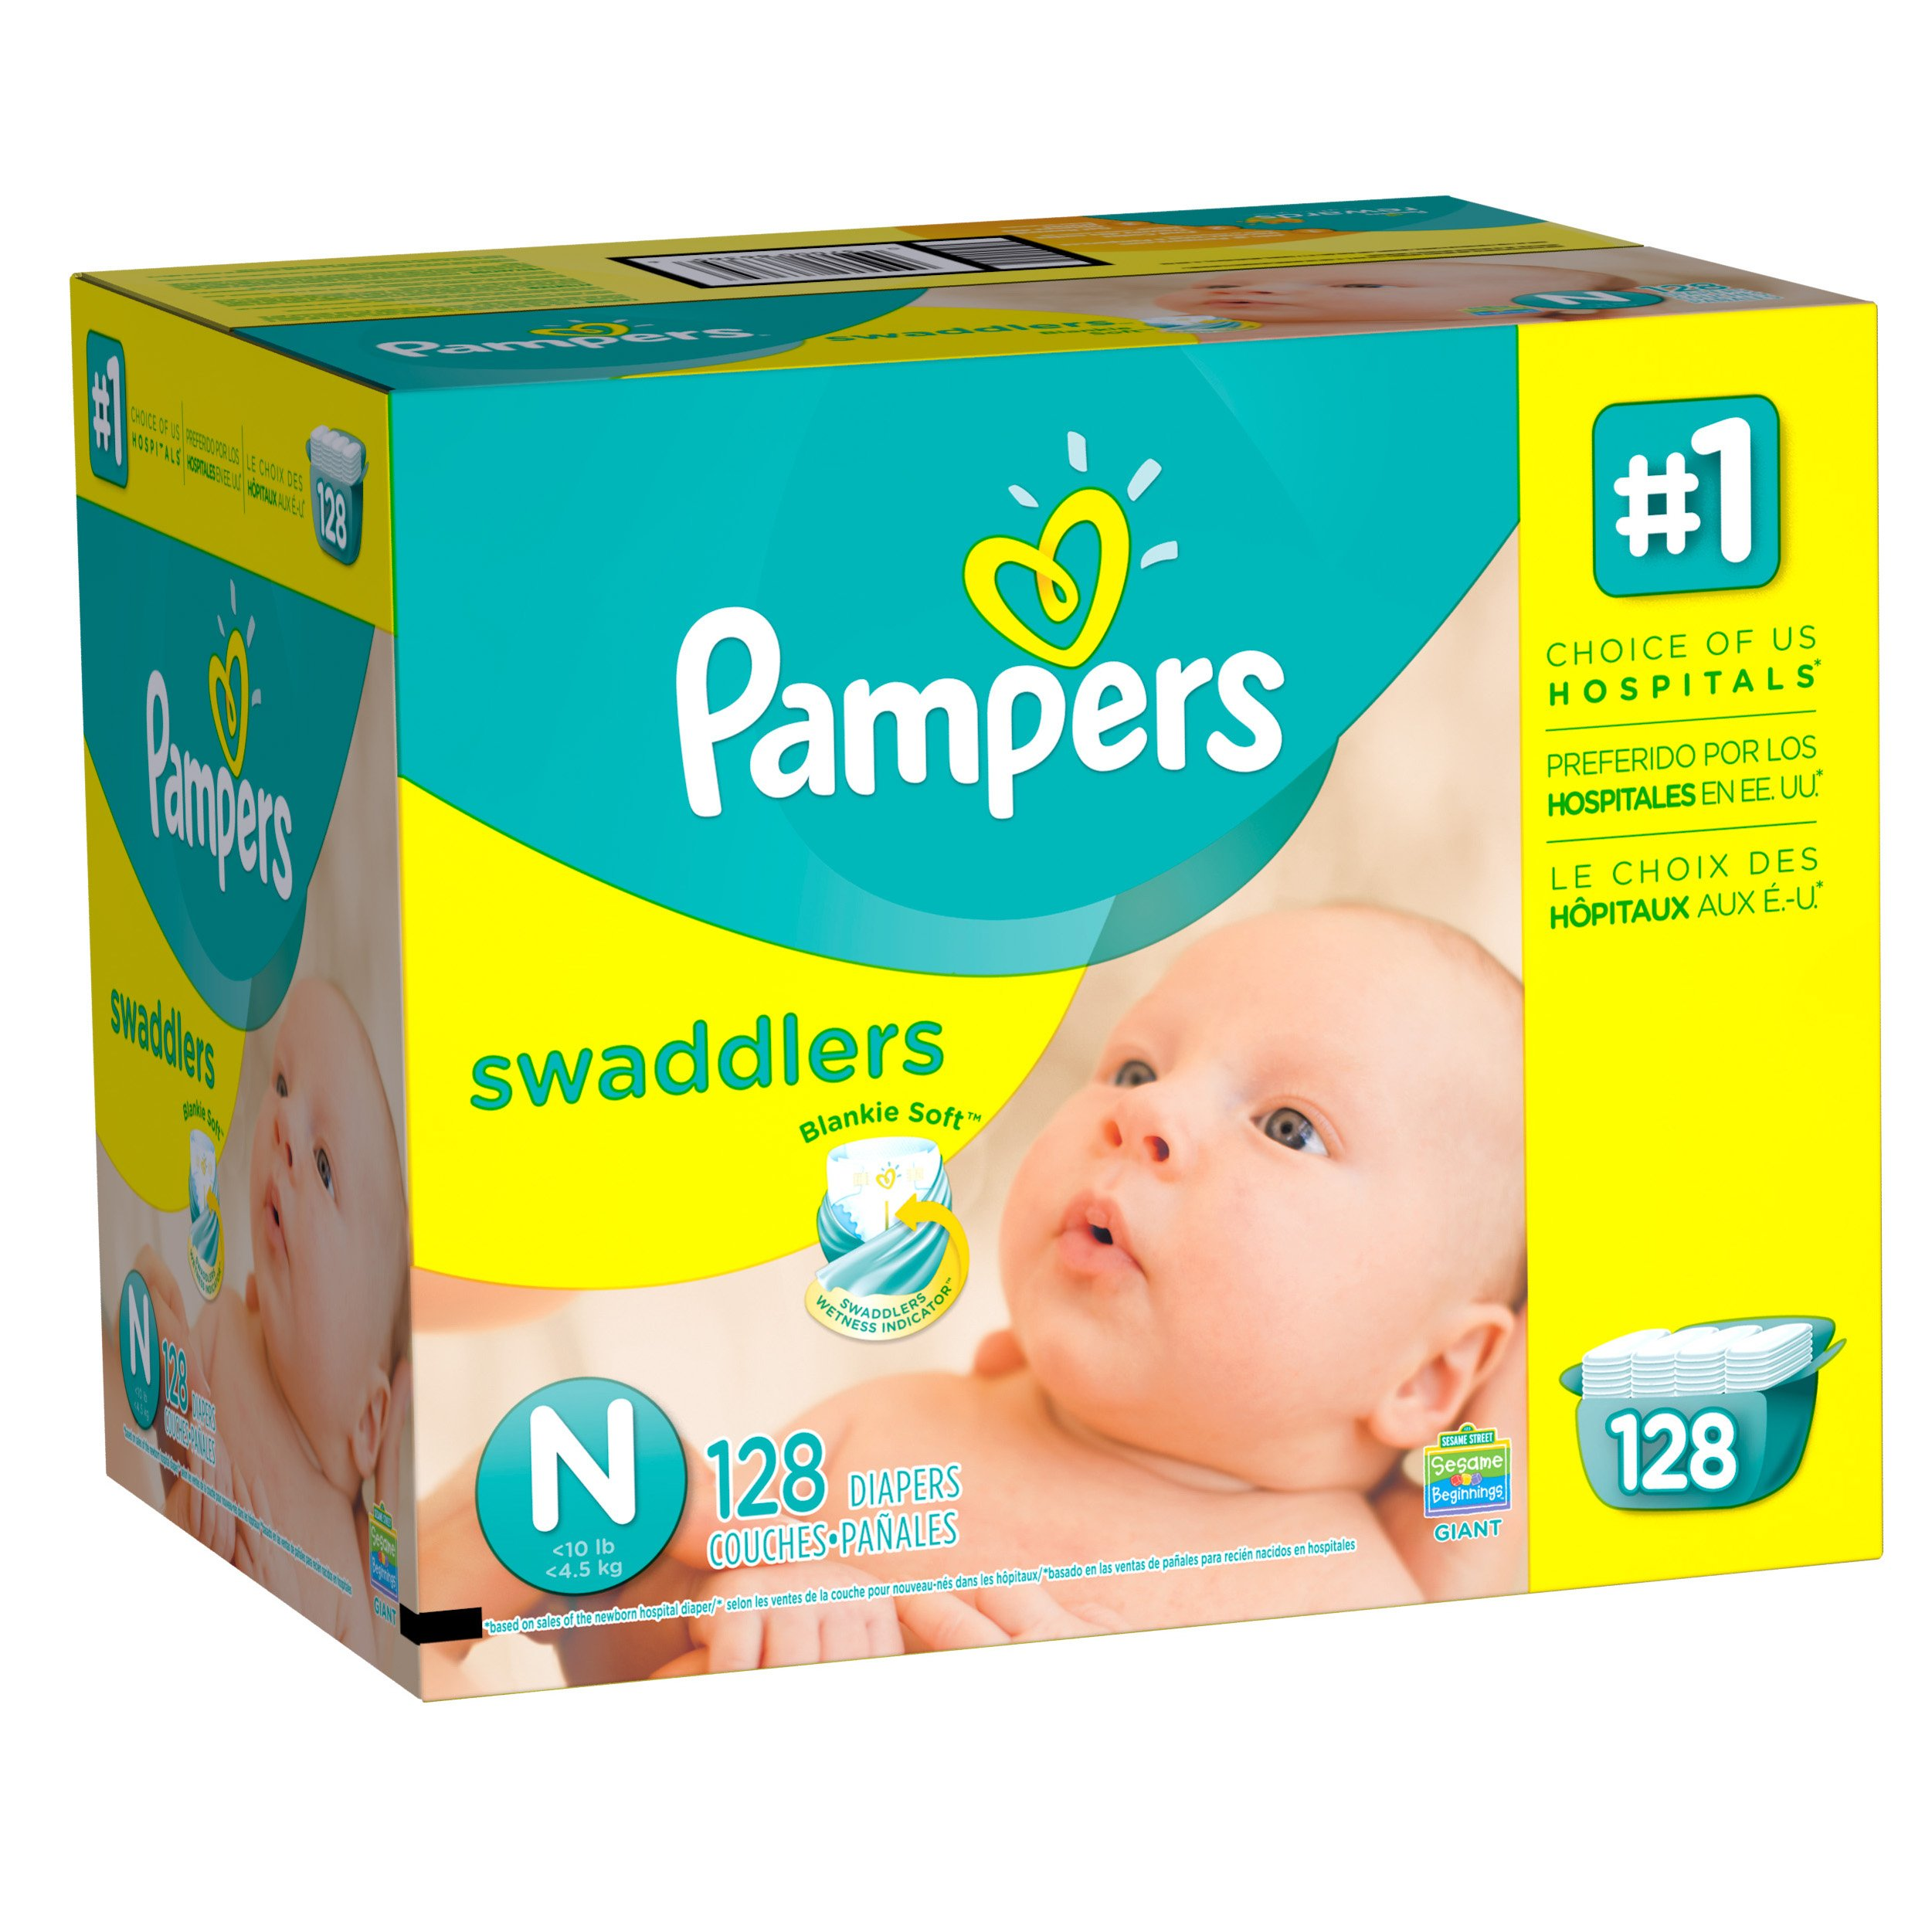 Pampers Swaddlers Disposable Diapers Newborn Size N (<10 lb), 128 Count, GIANT